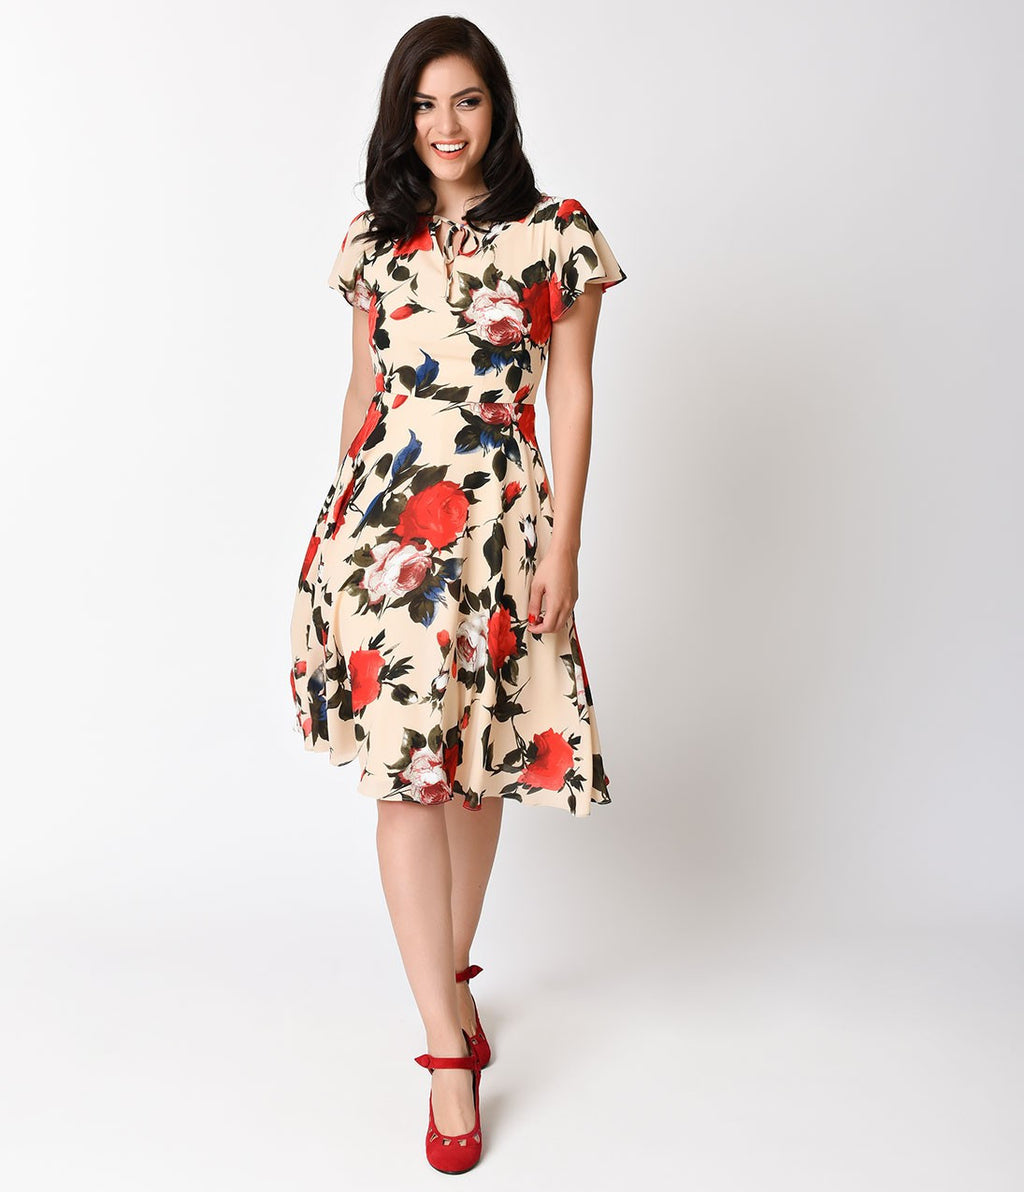 Formosa Dress in Cream Floral